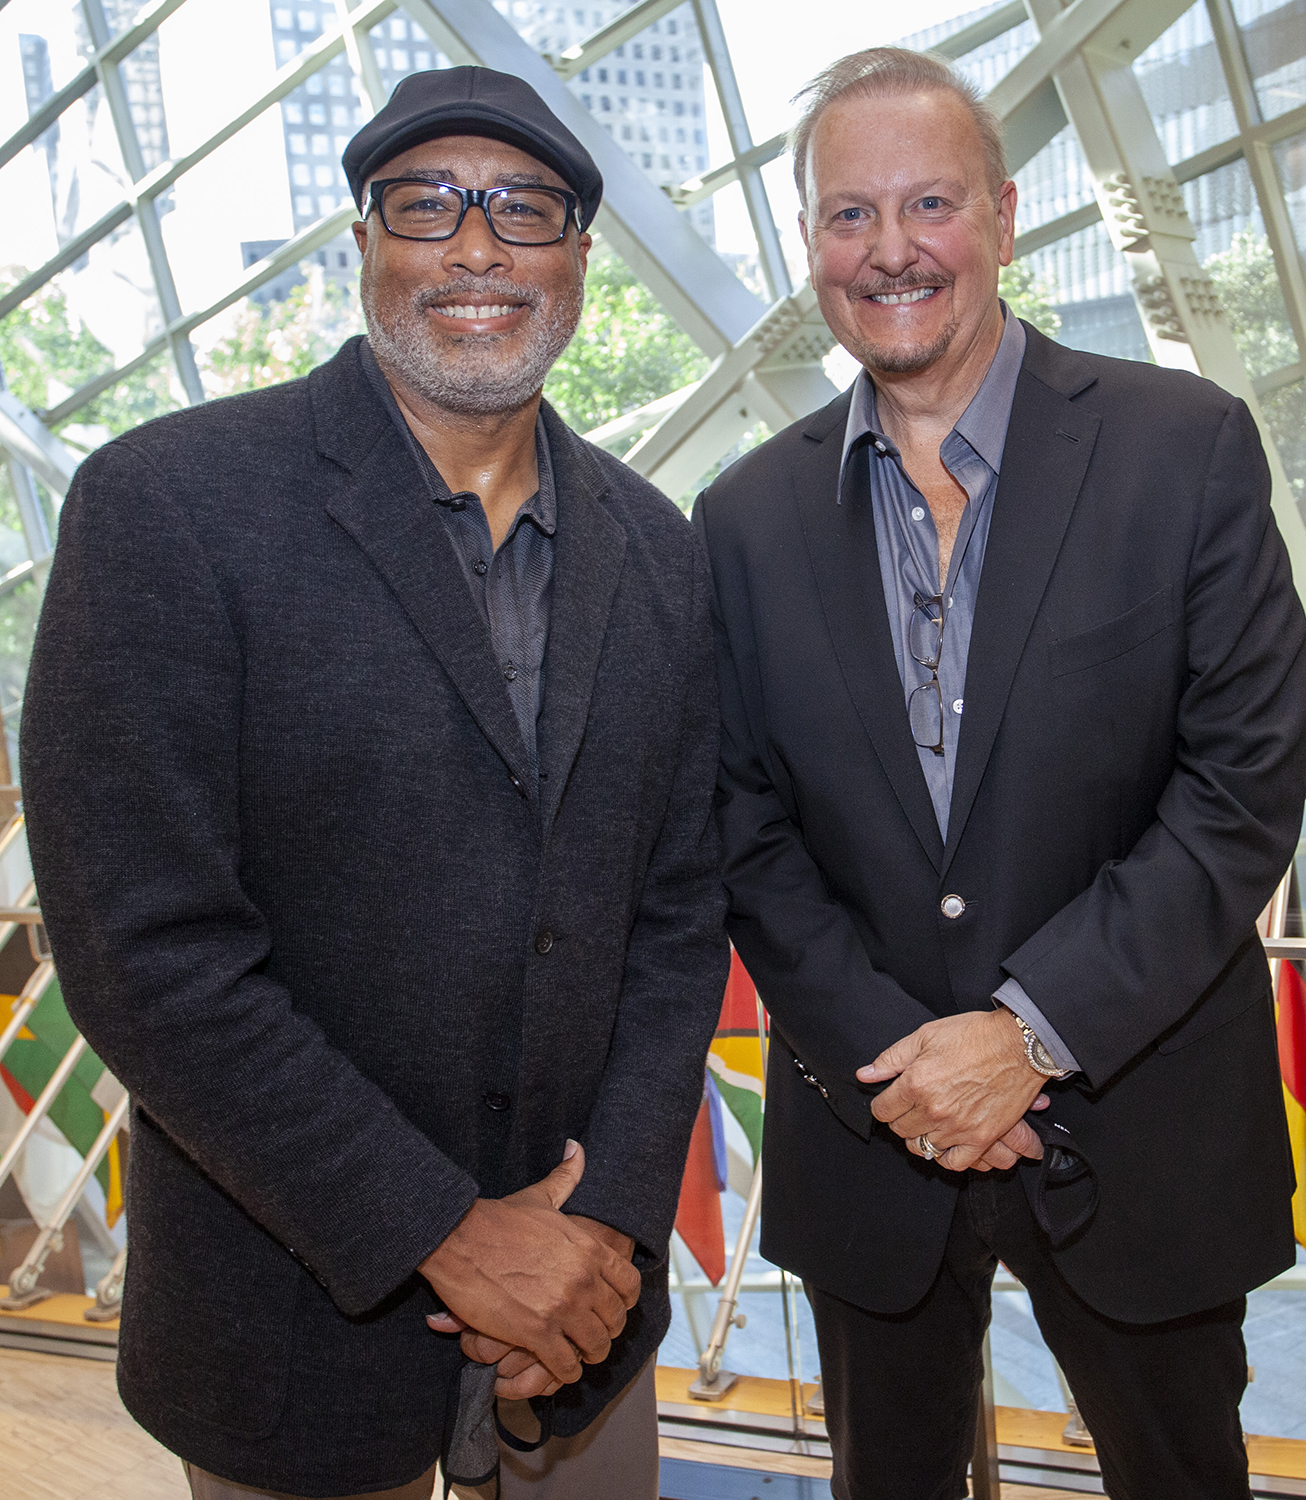 """New York Yankee Alum Bernie Williams and Charles Fazzino pictures at the 20th Anniversary of 9/11 unveiling Fazzino's pop art piece titled """"9/11: A Time for Remembrance, Twenty Years Later"""""""